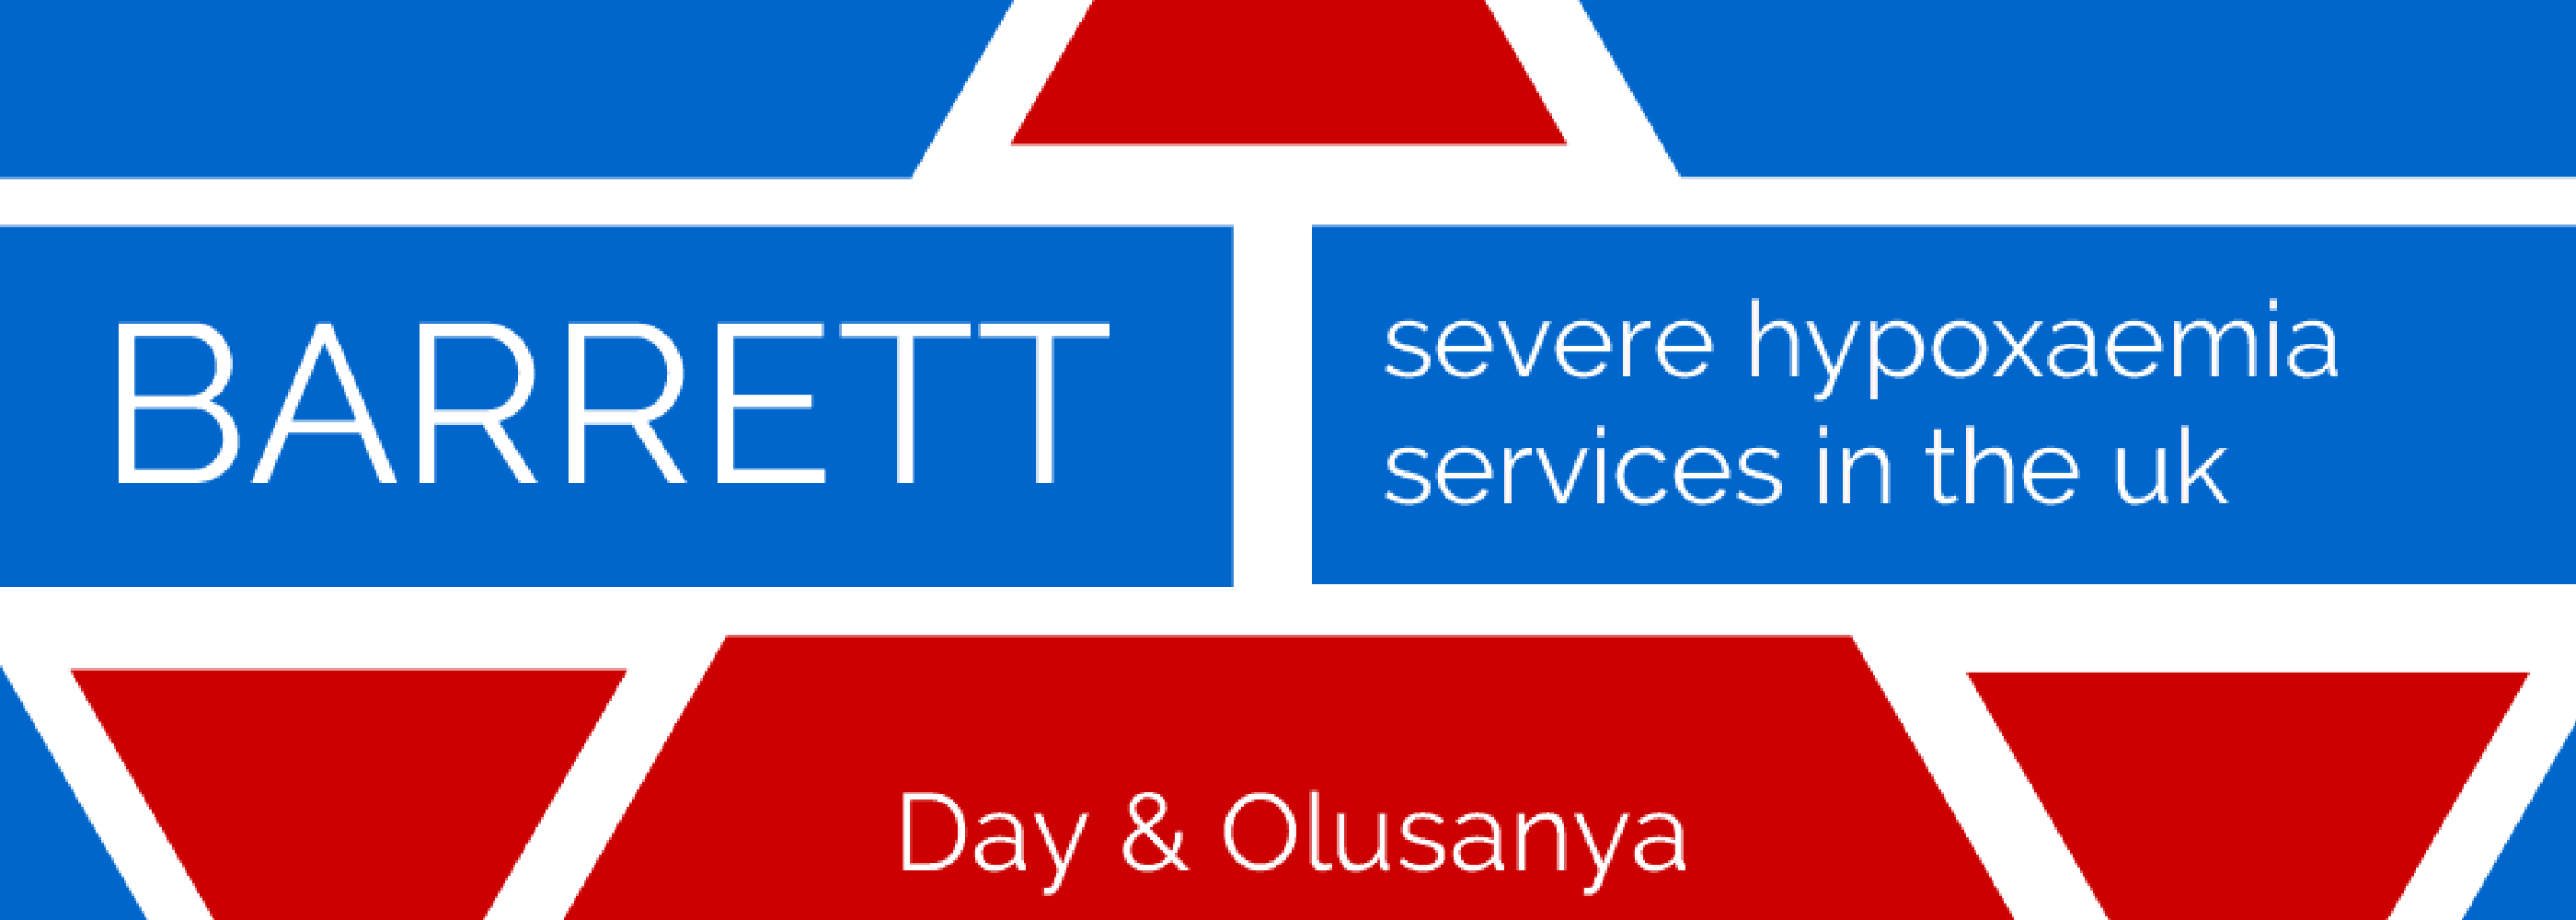 Day and Olusanya interview Barrett about severe hypoxaemia services in the UK.